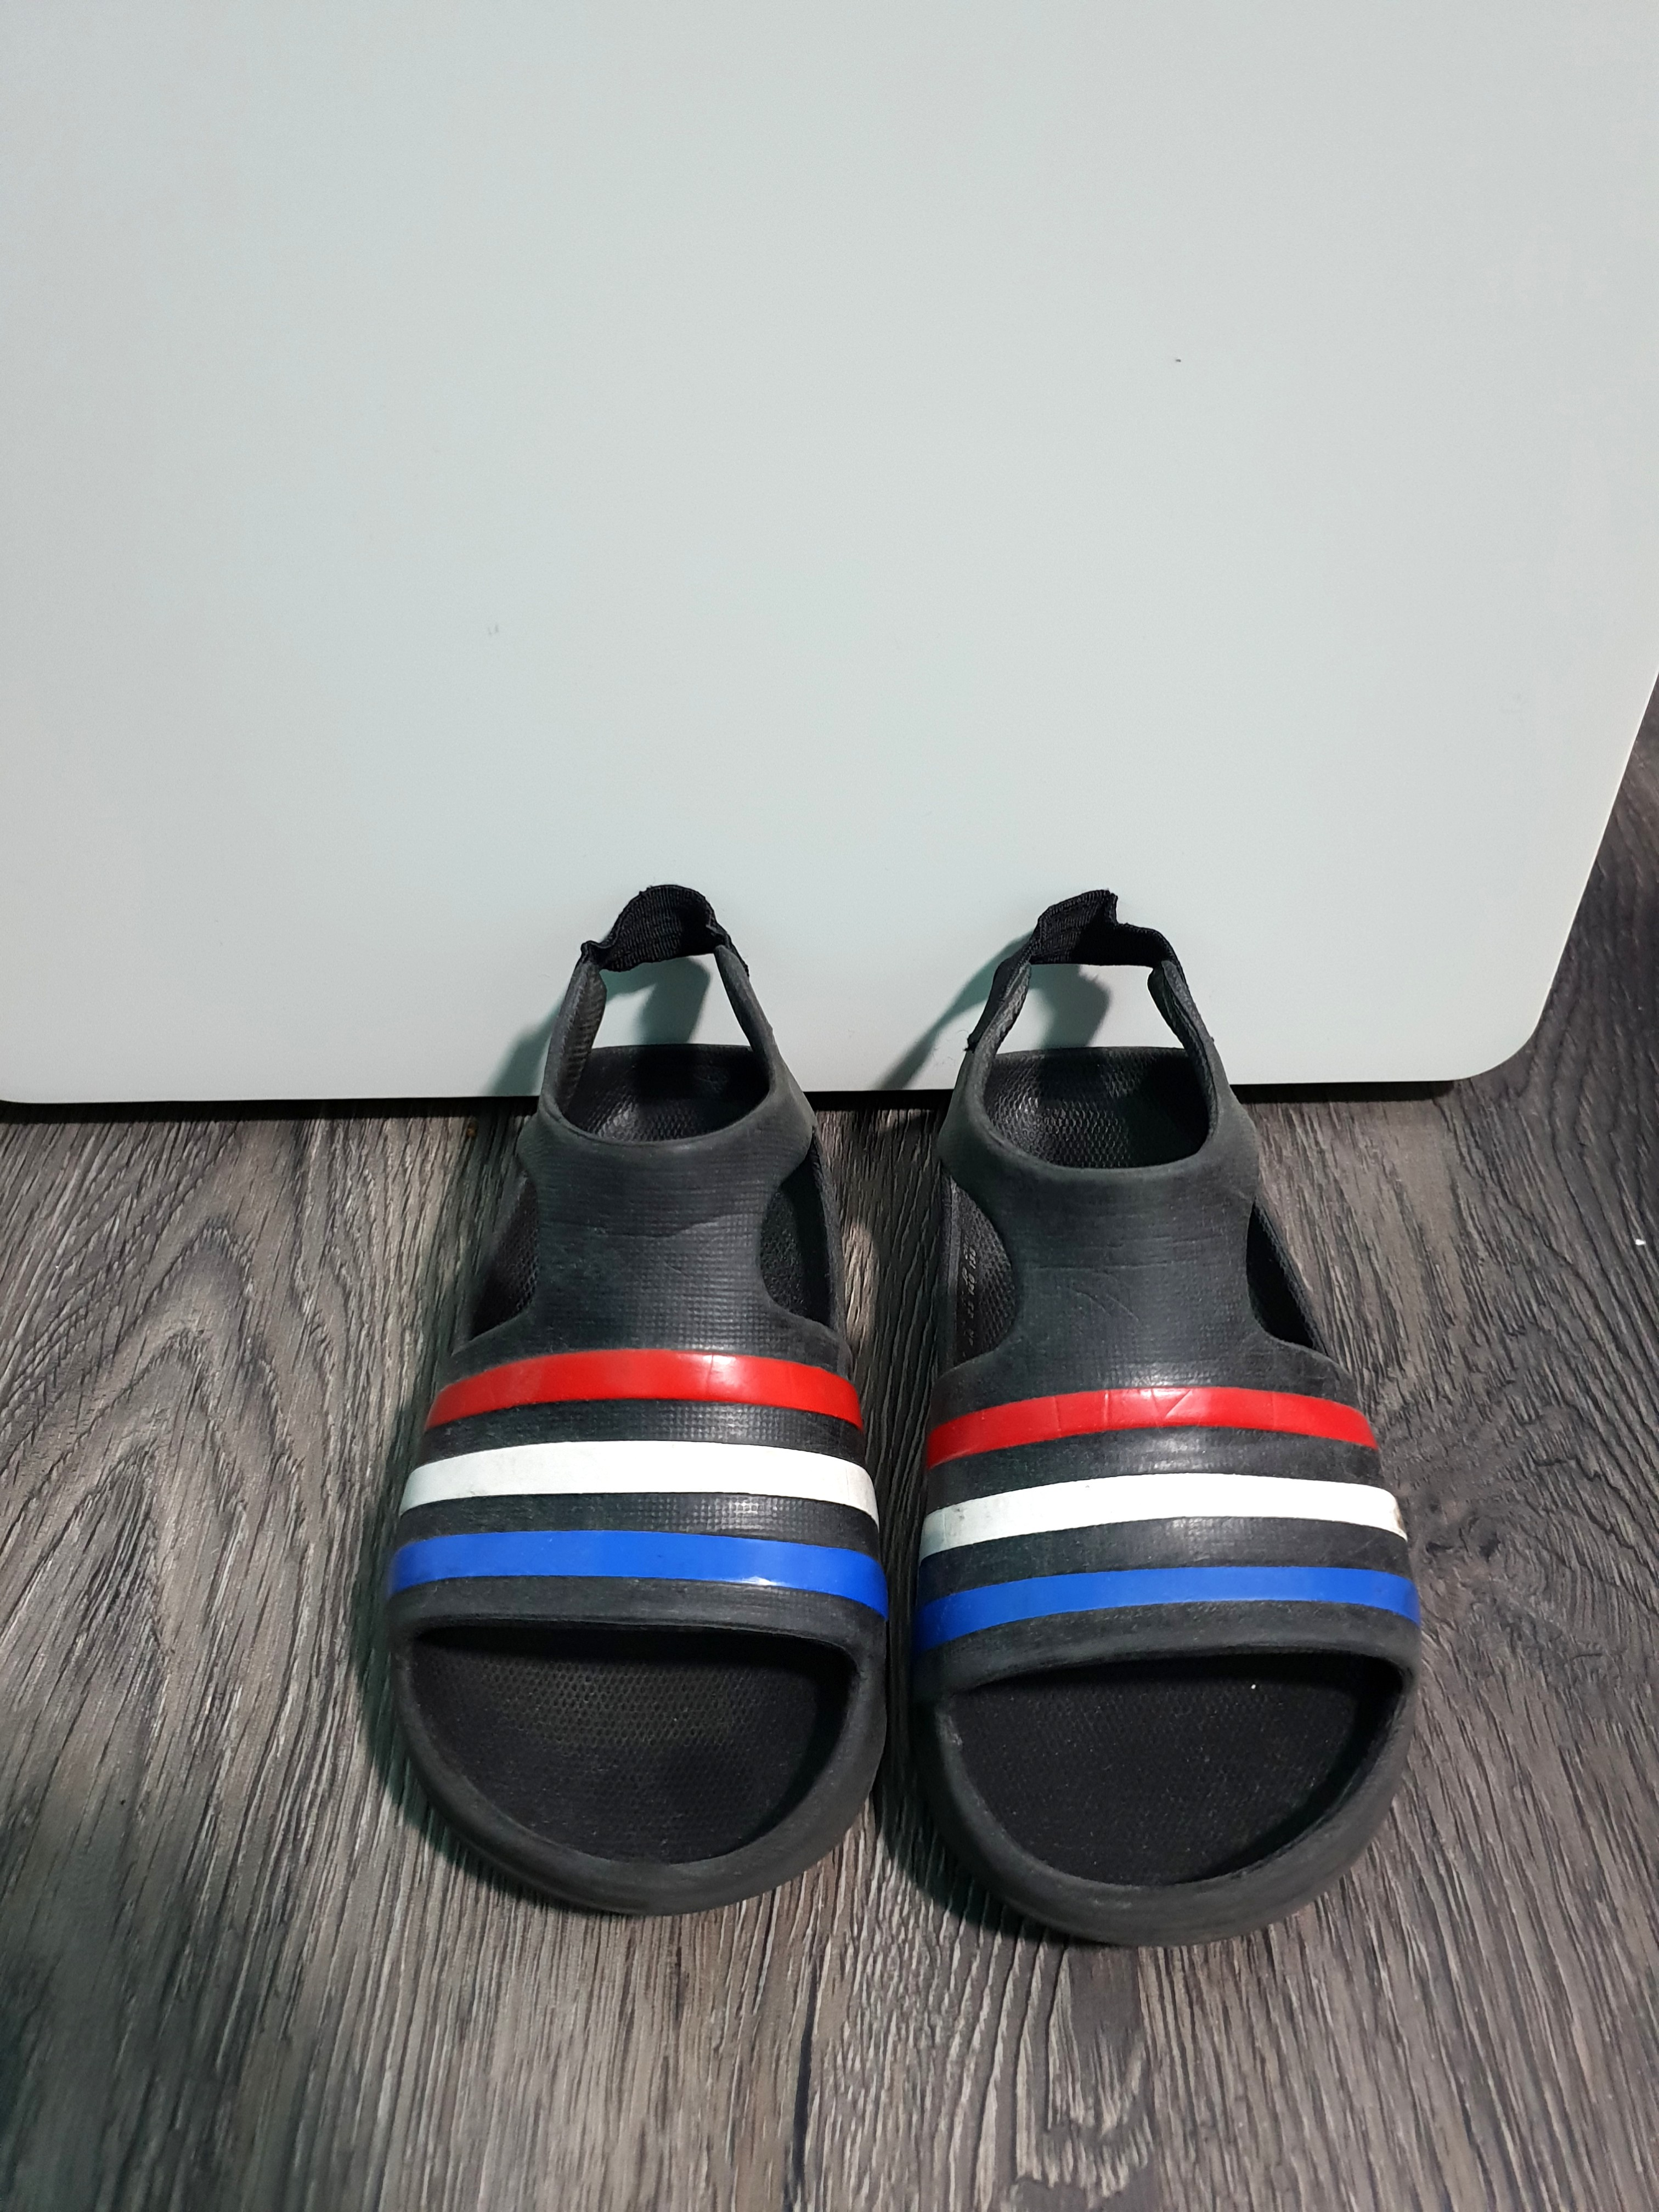 ae424e5eef56e Adidas Adilette Play Slides in Black